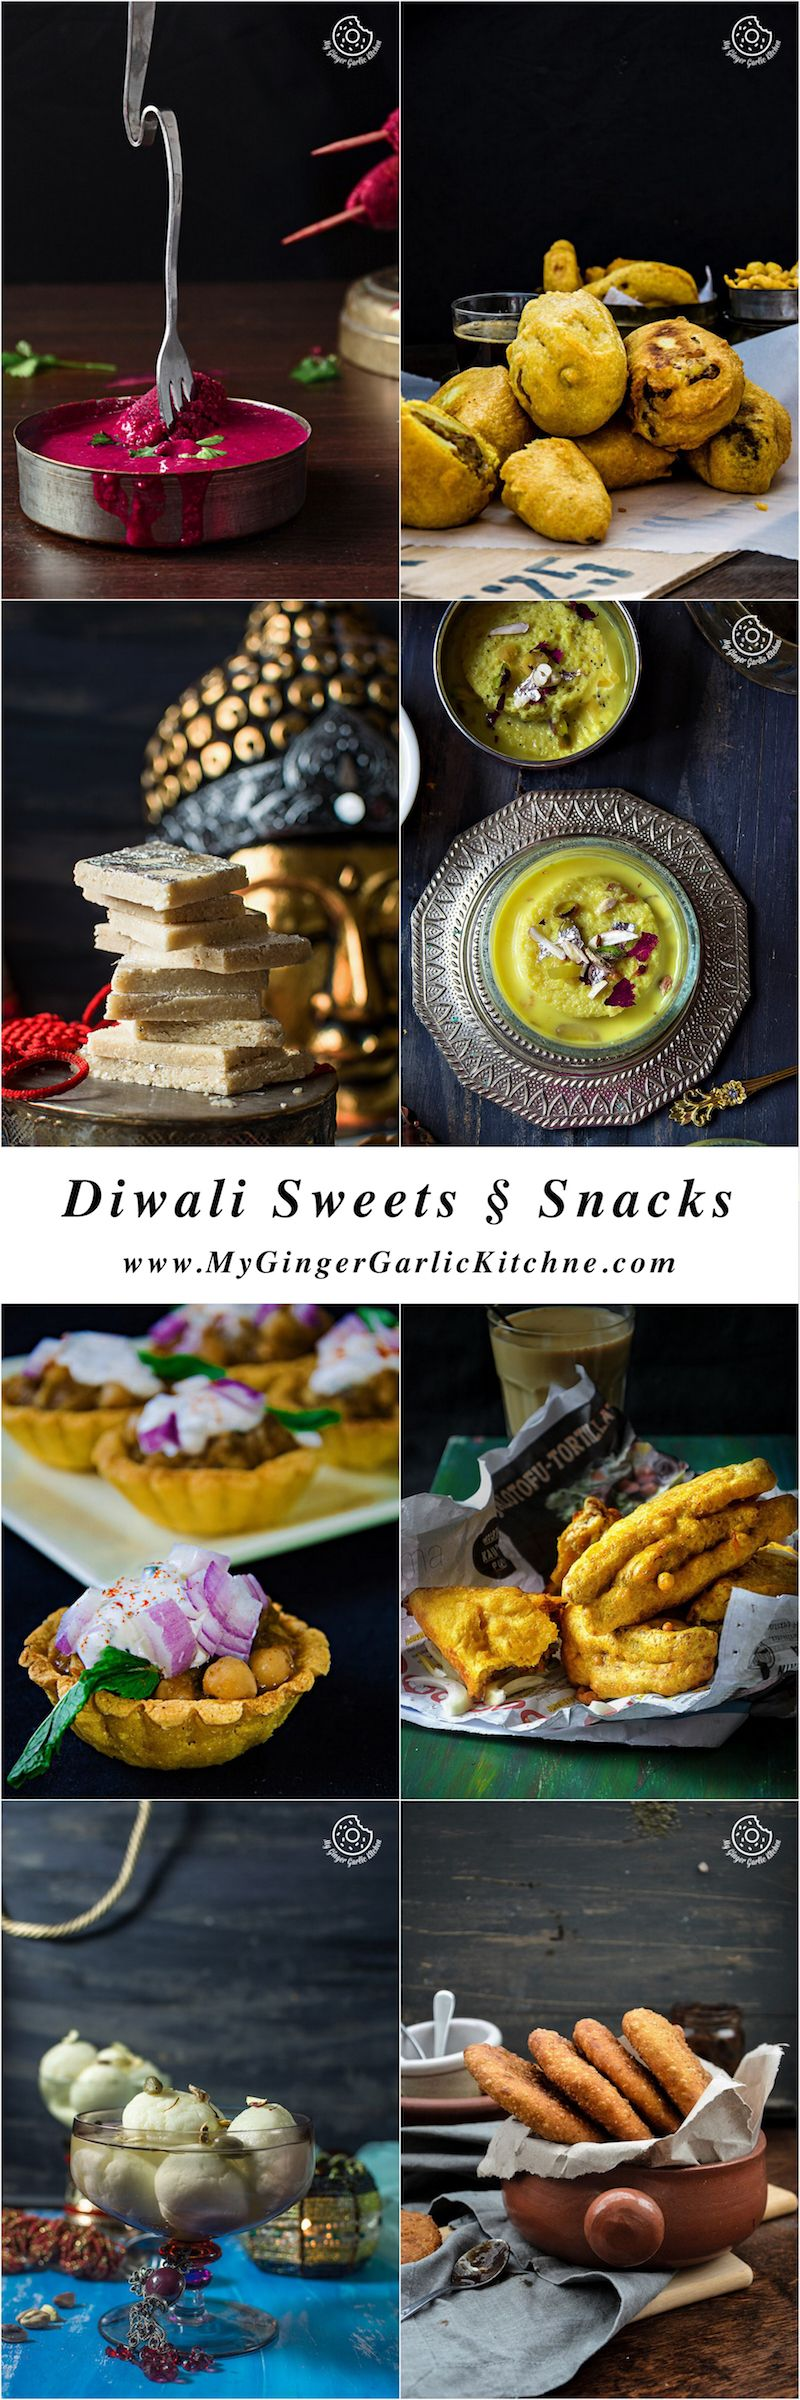 Diwali sweets and snacks recipes mygingergarlickitchen diwali sweets and snacks recipes mygingergarlickitchen anupamadreams forumfinder Gallery